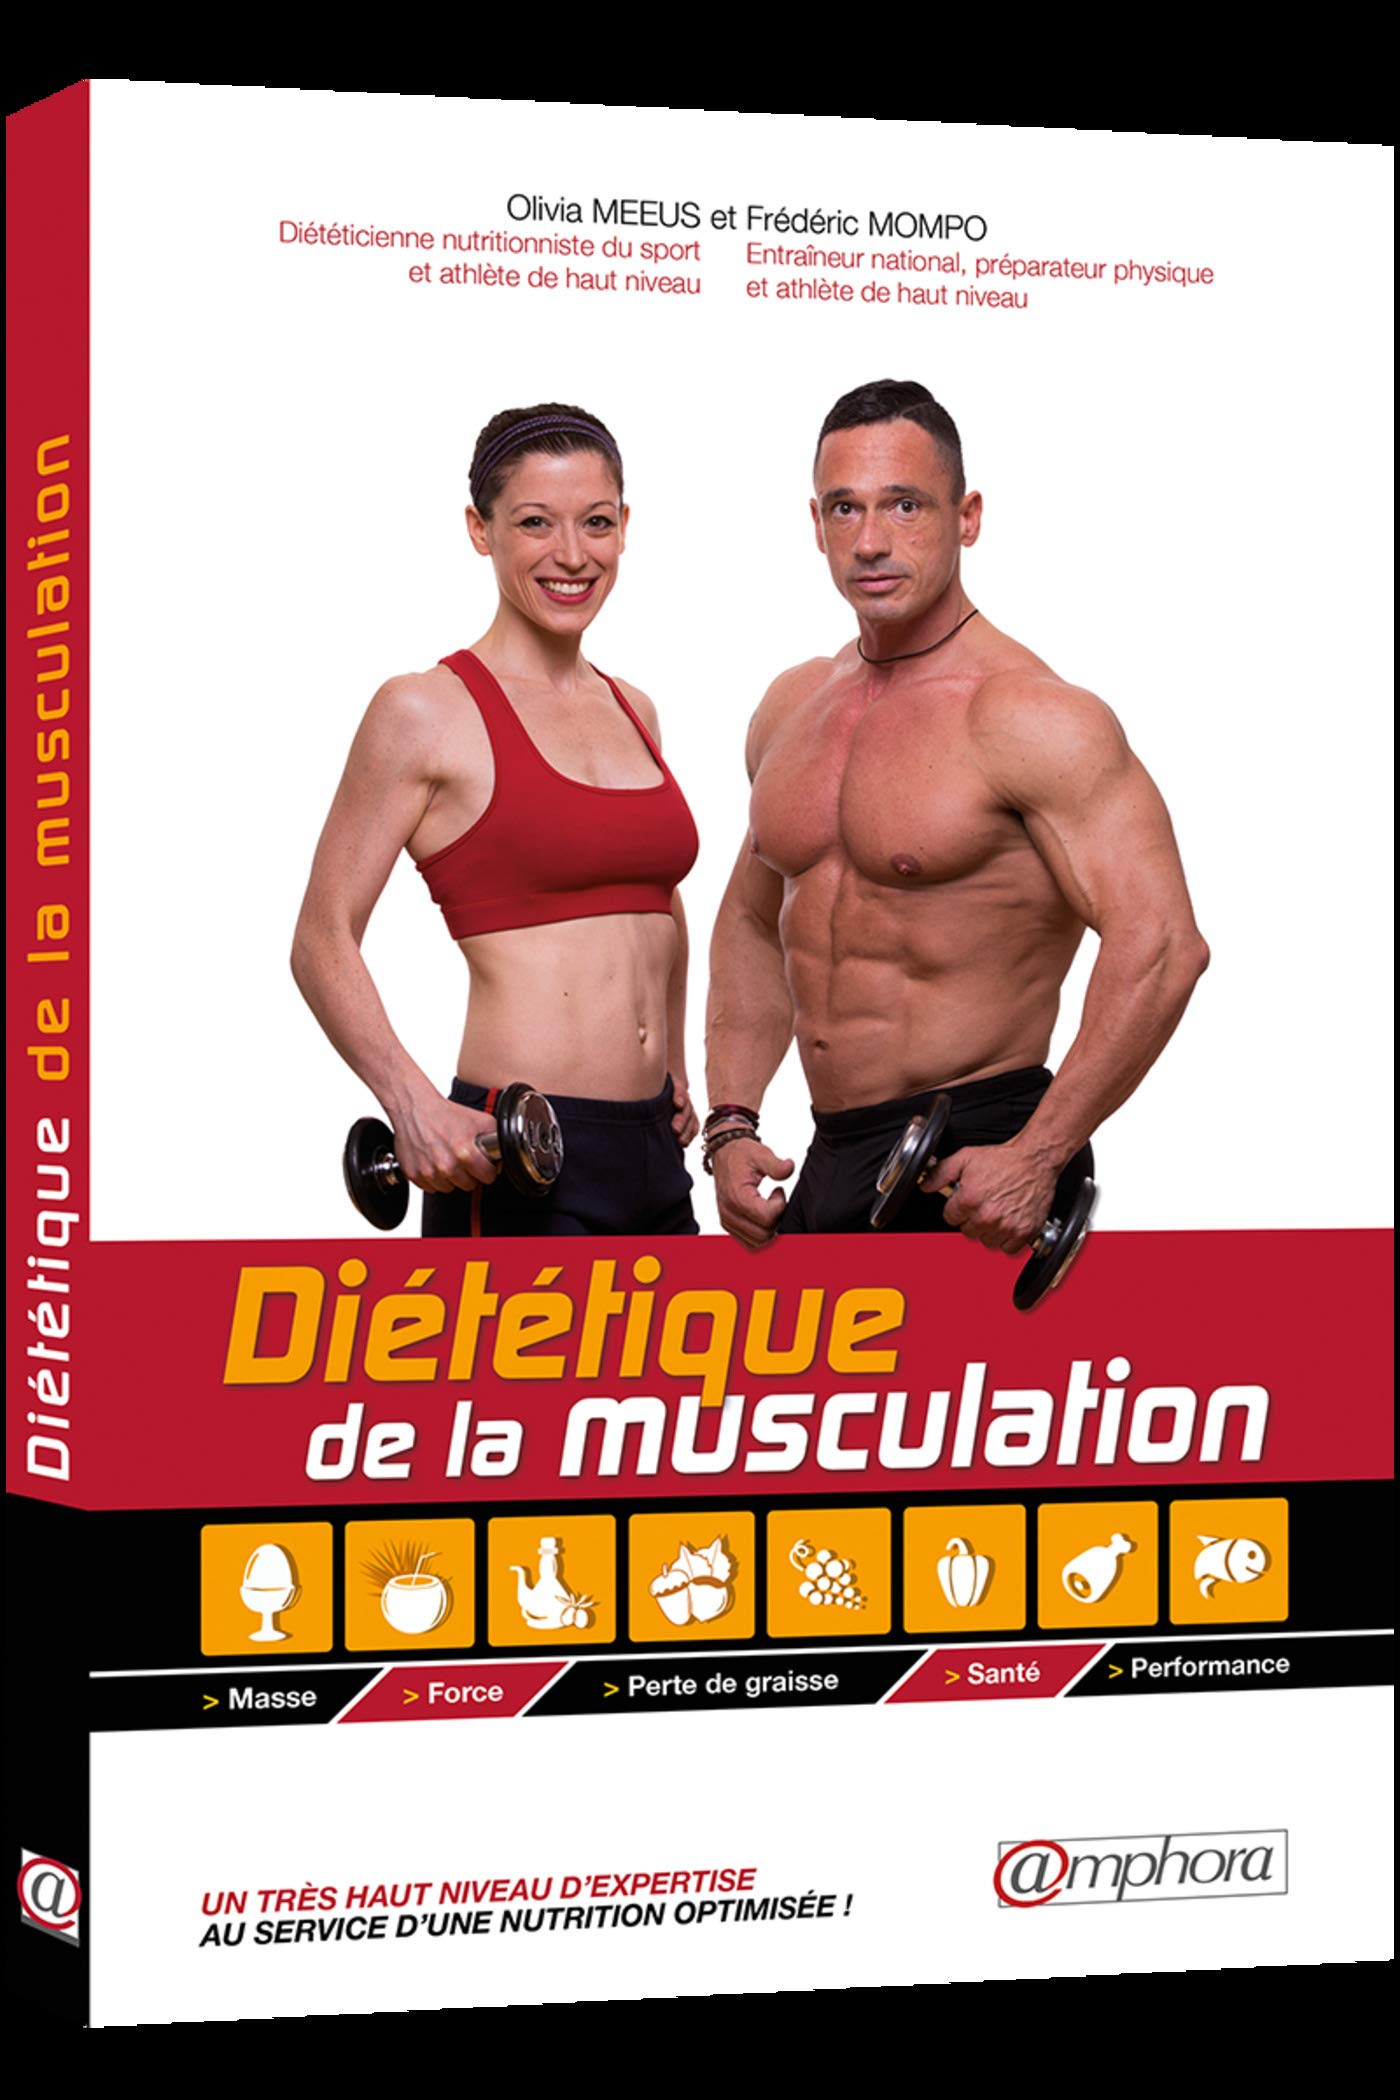 Top 10 YouTube Clips About acheter steroide anabolisant en france